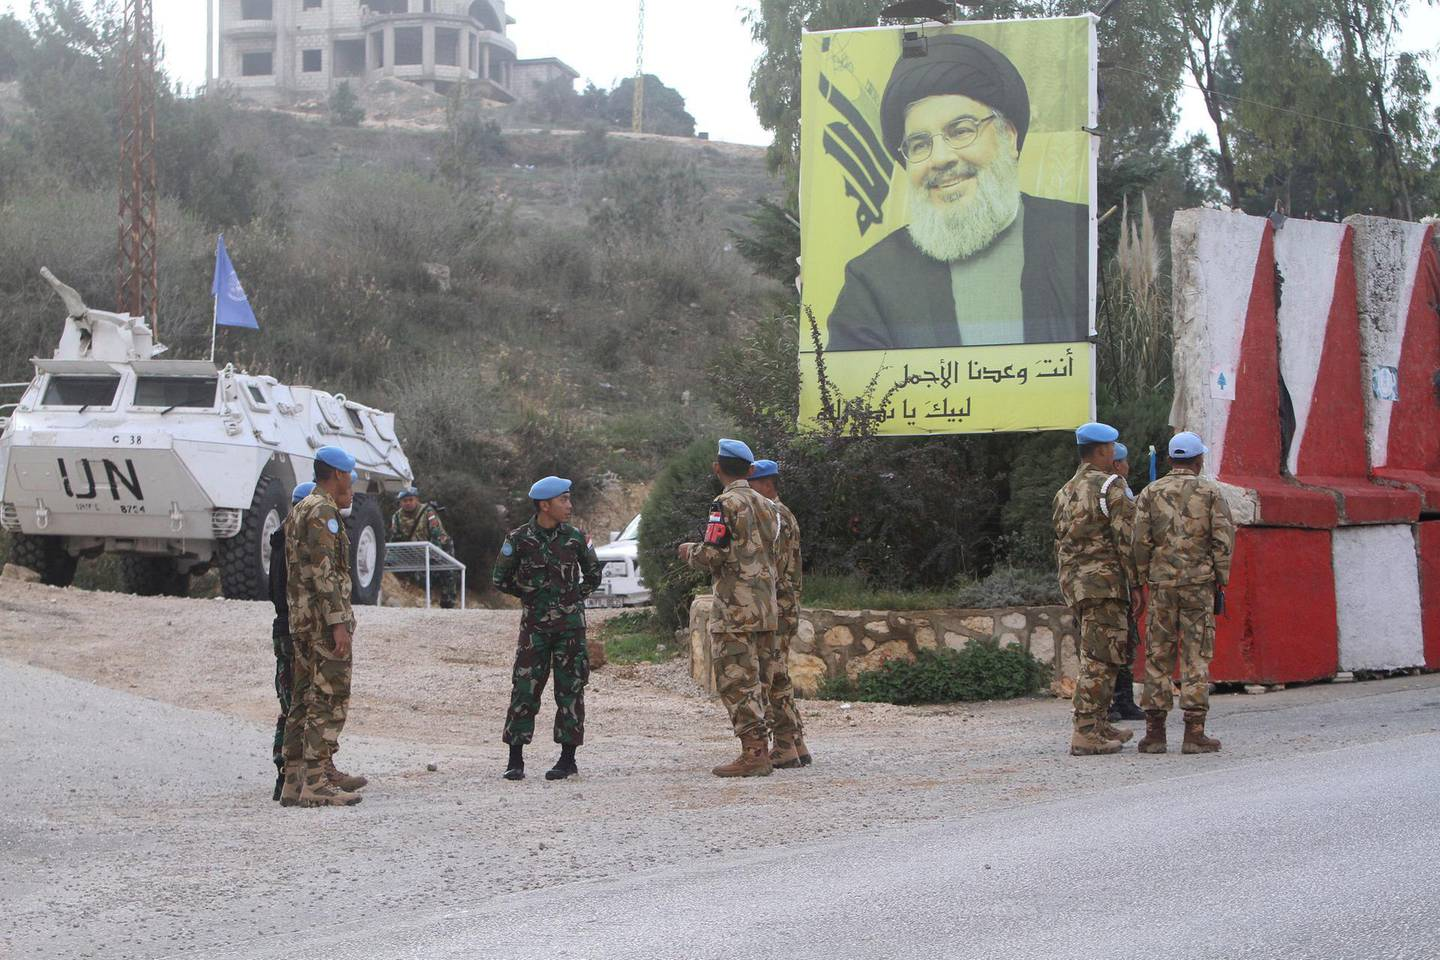 """Indonesian U.N peacekeepers stand in front a poster of Hezbollah leader Sheik Hassan Nasrallah, as they patrol the Lebanese side of the Lebanese-Israeli border in the southern village of Kfar Kila, Lebanon, Tuesday, Dec. 4, 2018. The Israeli military launched an operation on Tuesday to """"expose and thwart"""" tunnels it says were built by the Hezbollah militant group that stretch from Lebanon into northern Israel. (AP Photo/Mohammed Zaatari)"""